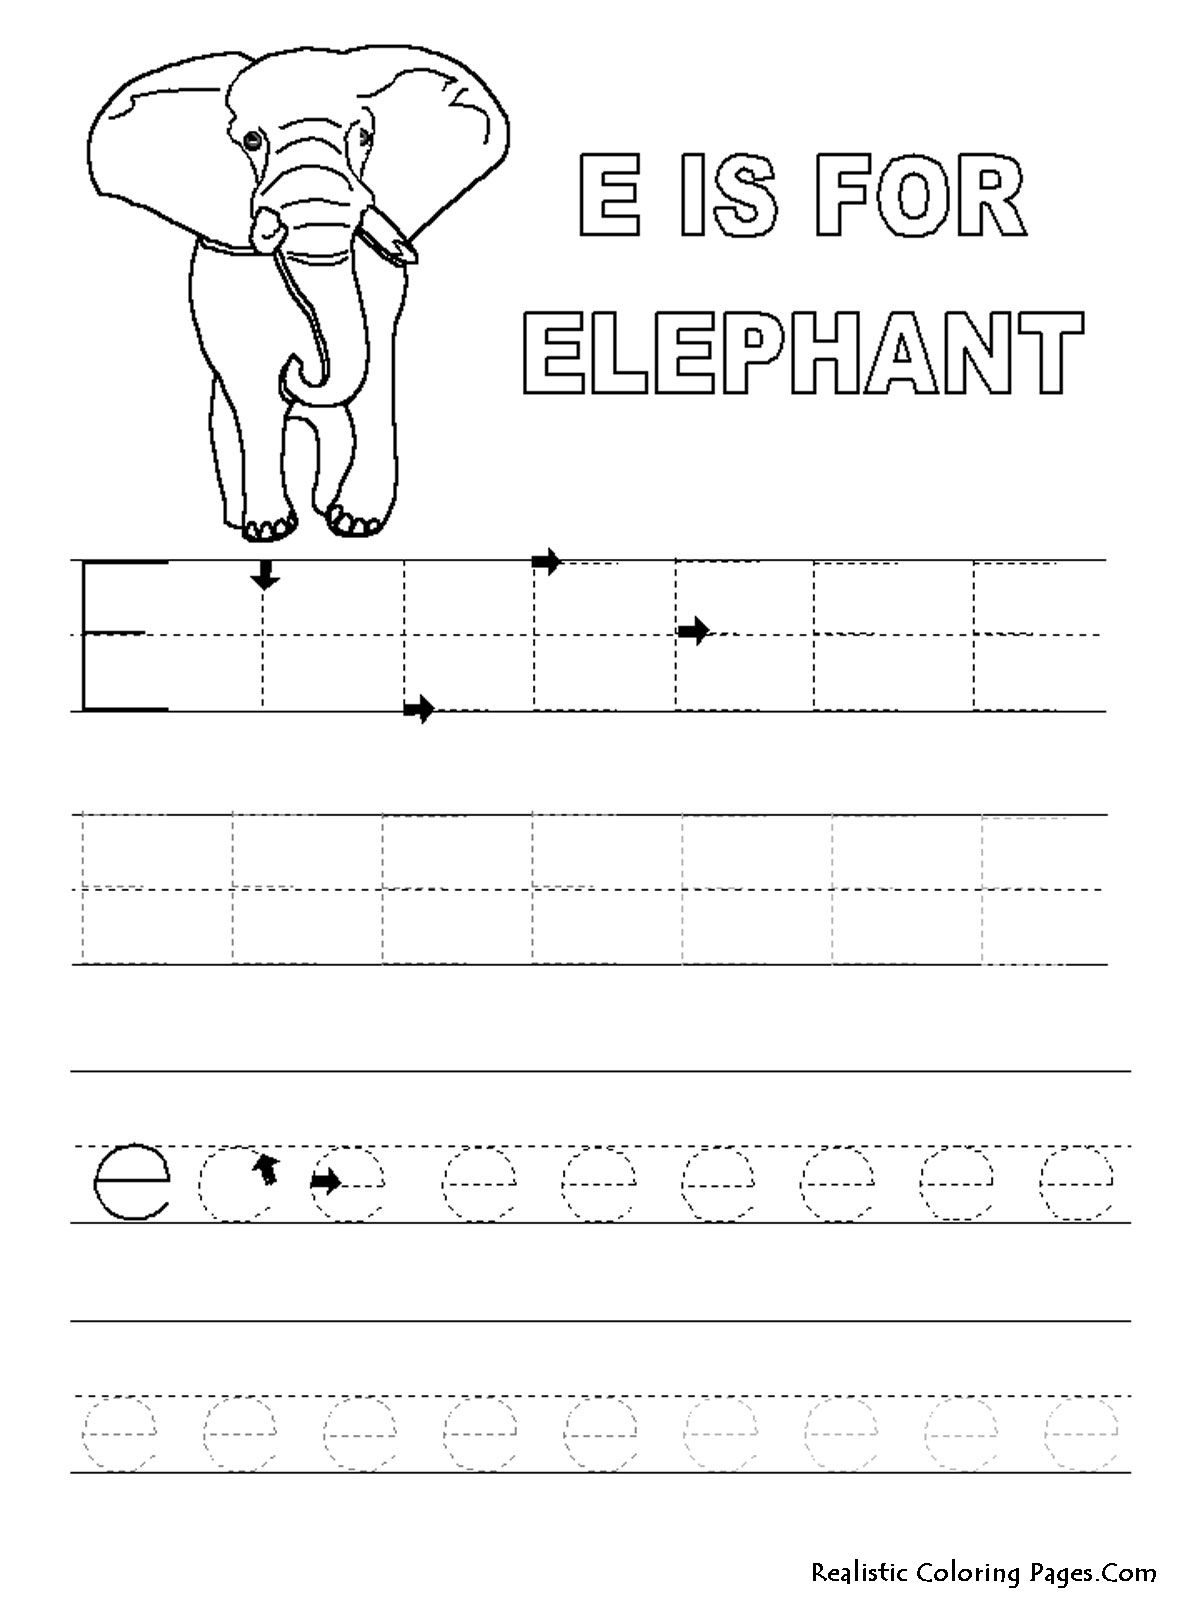 Alphabet Tracer Pages E Elephant | Coloring Pages | Pinterest ...